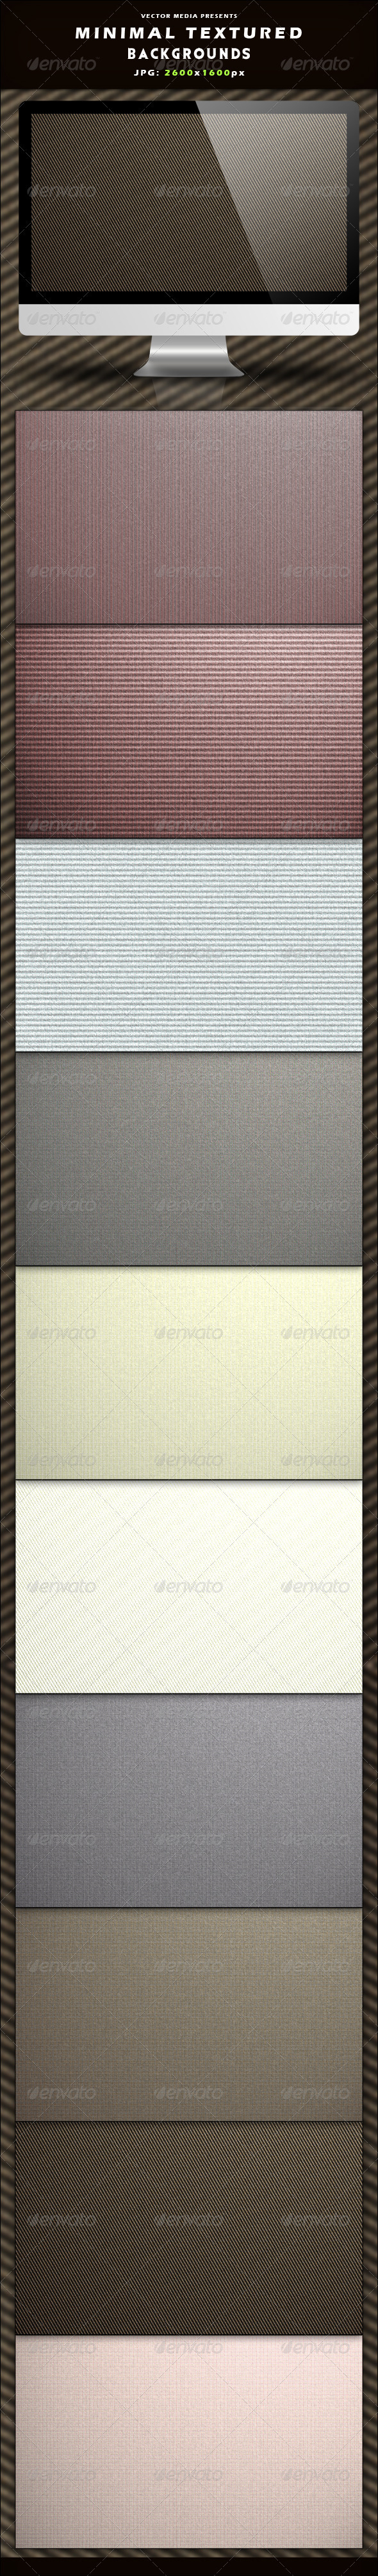 Minimal Textured - Backgrounds - Patterns Backgrounds